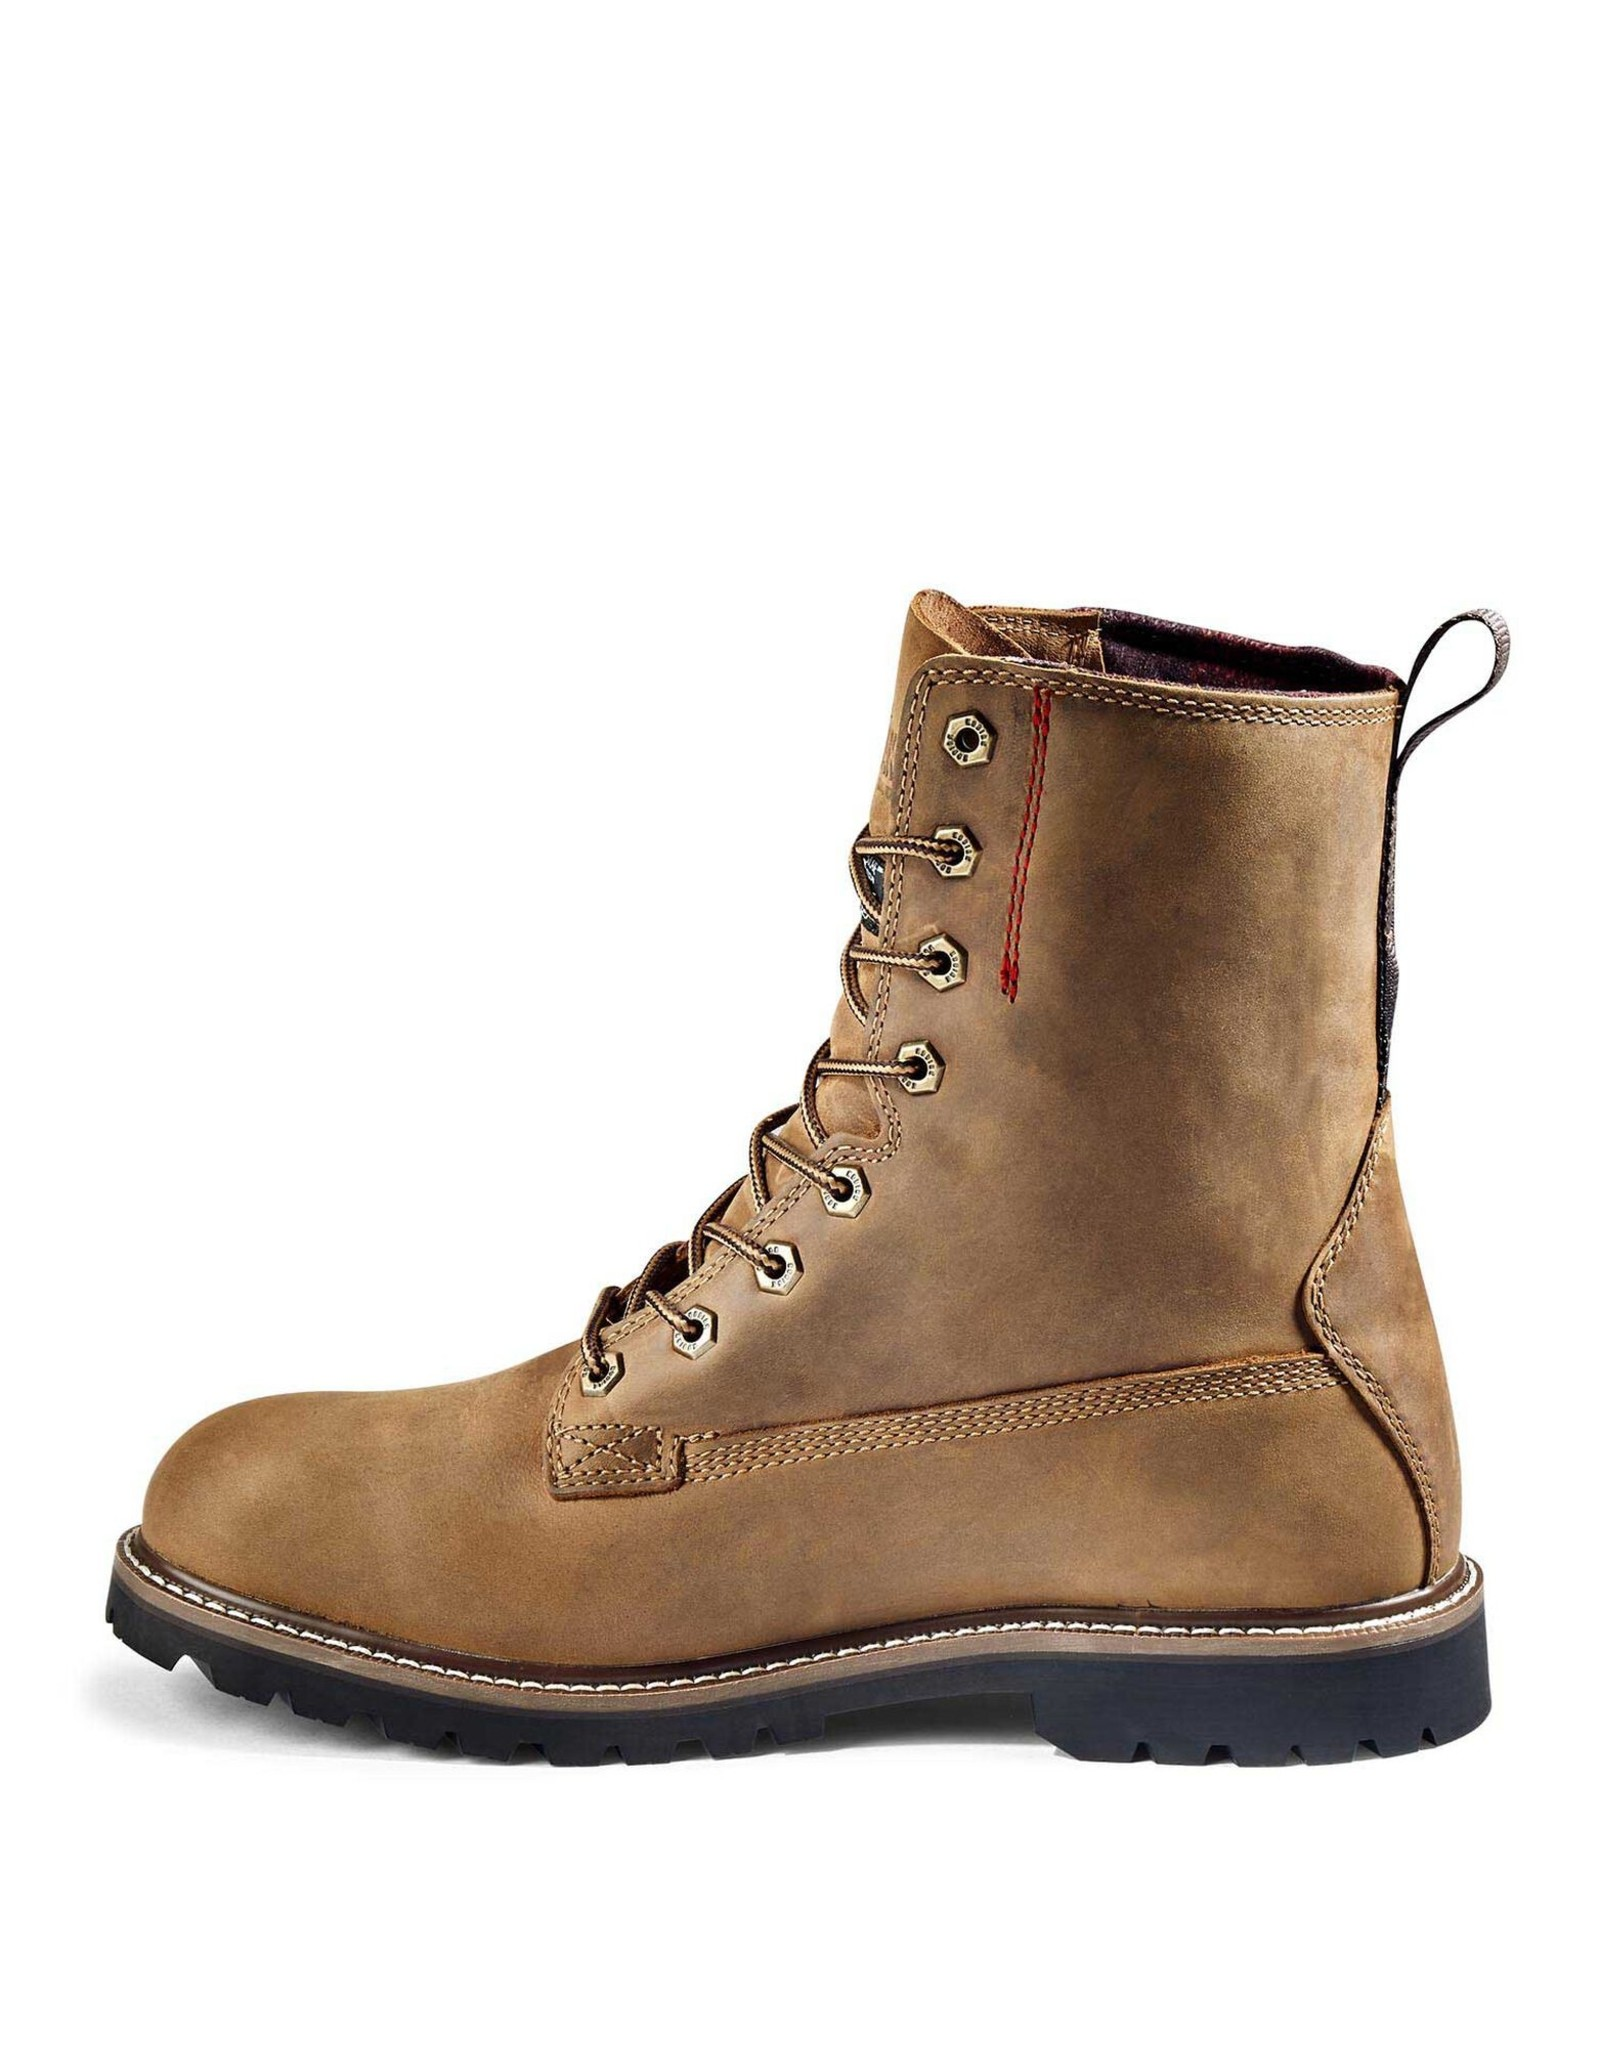 KODIAK MCKINNEY WATERPROOF WINTER BOOT